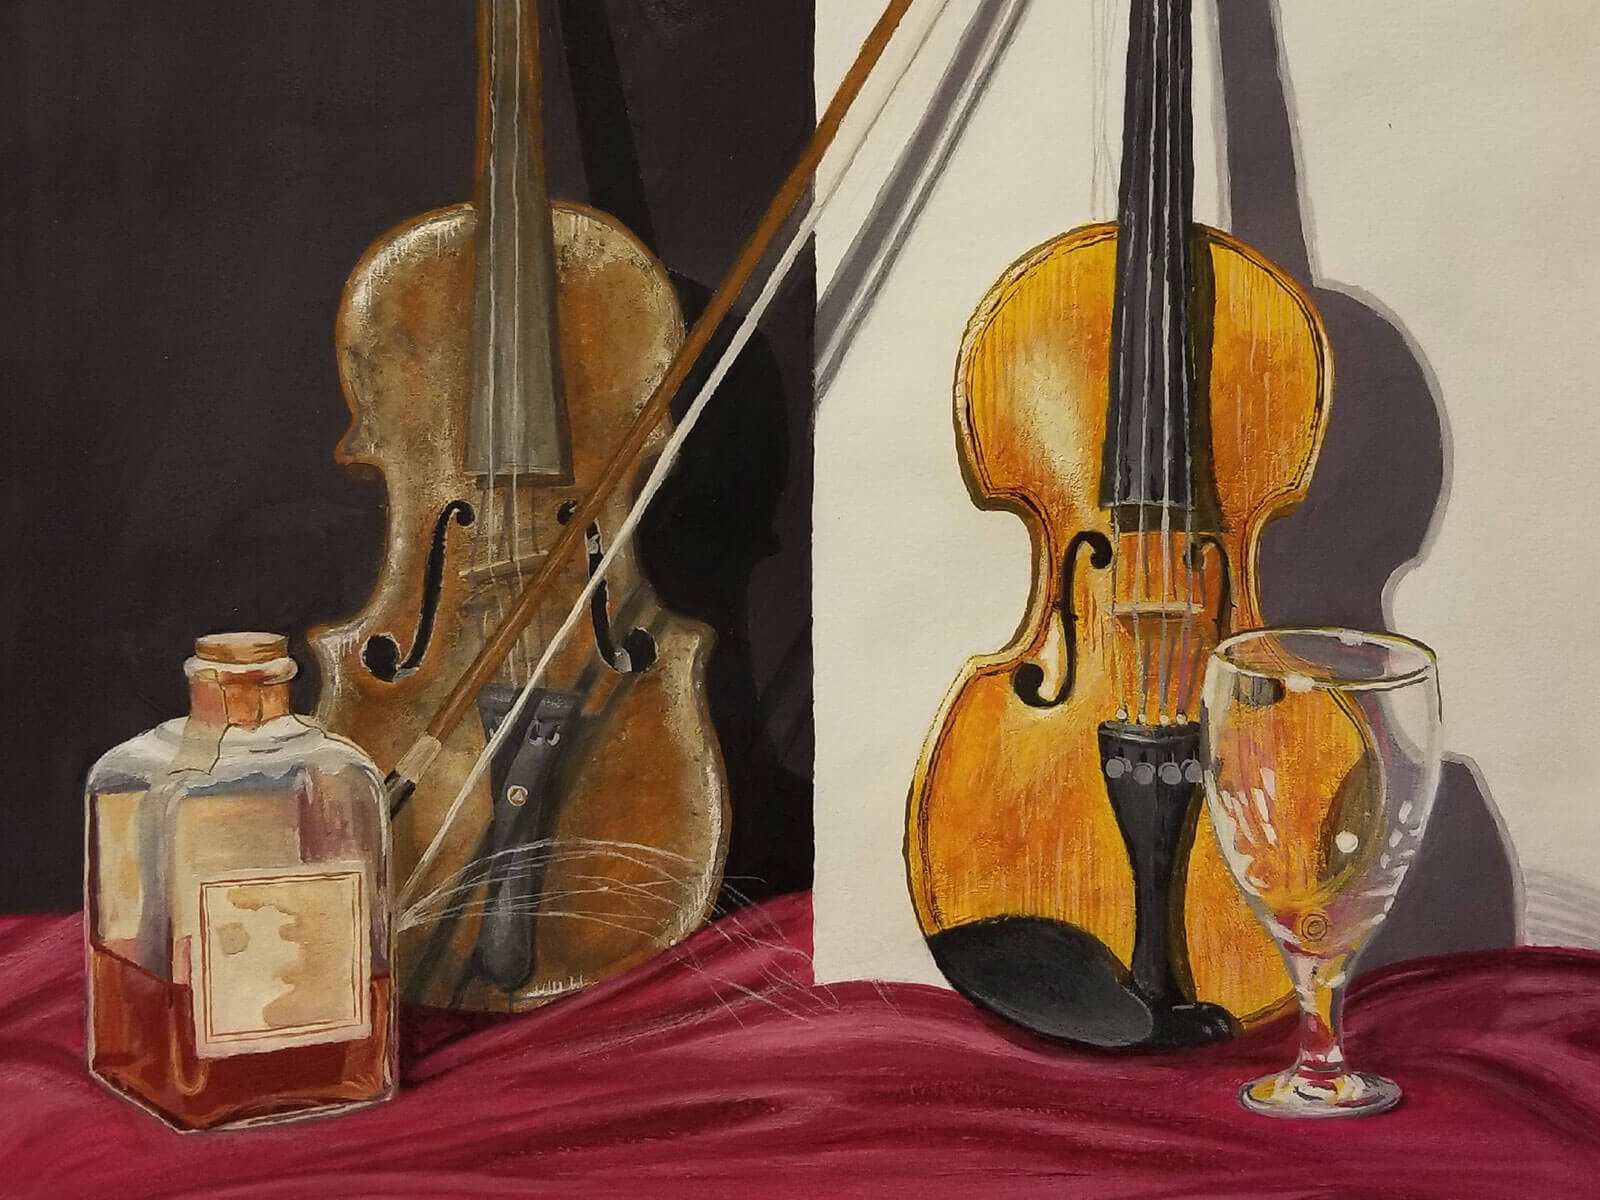 Painting of two violins, a bottle of alcohol and a glass